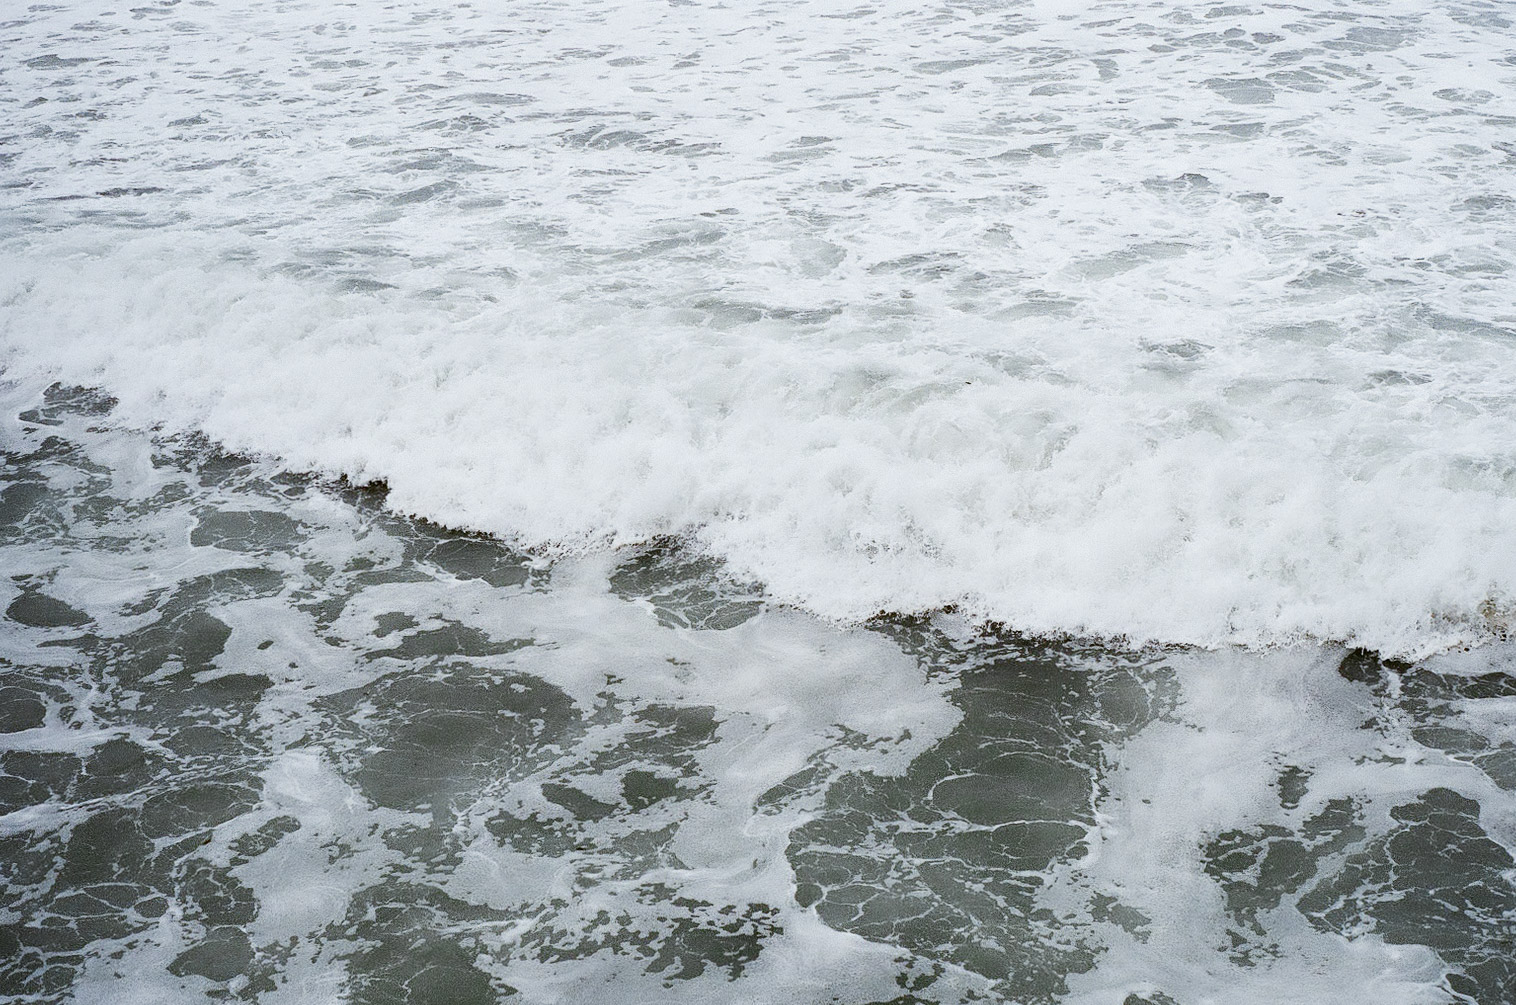 A frothing, churning winter sea awaits us in San Diego; the water is by no means friendly, but it is still rejuvinating.